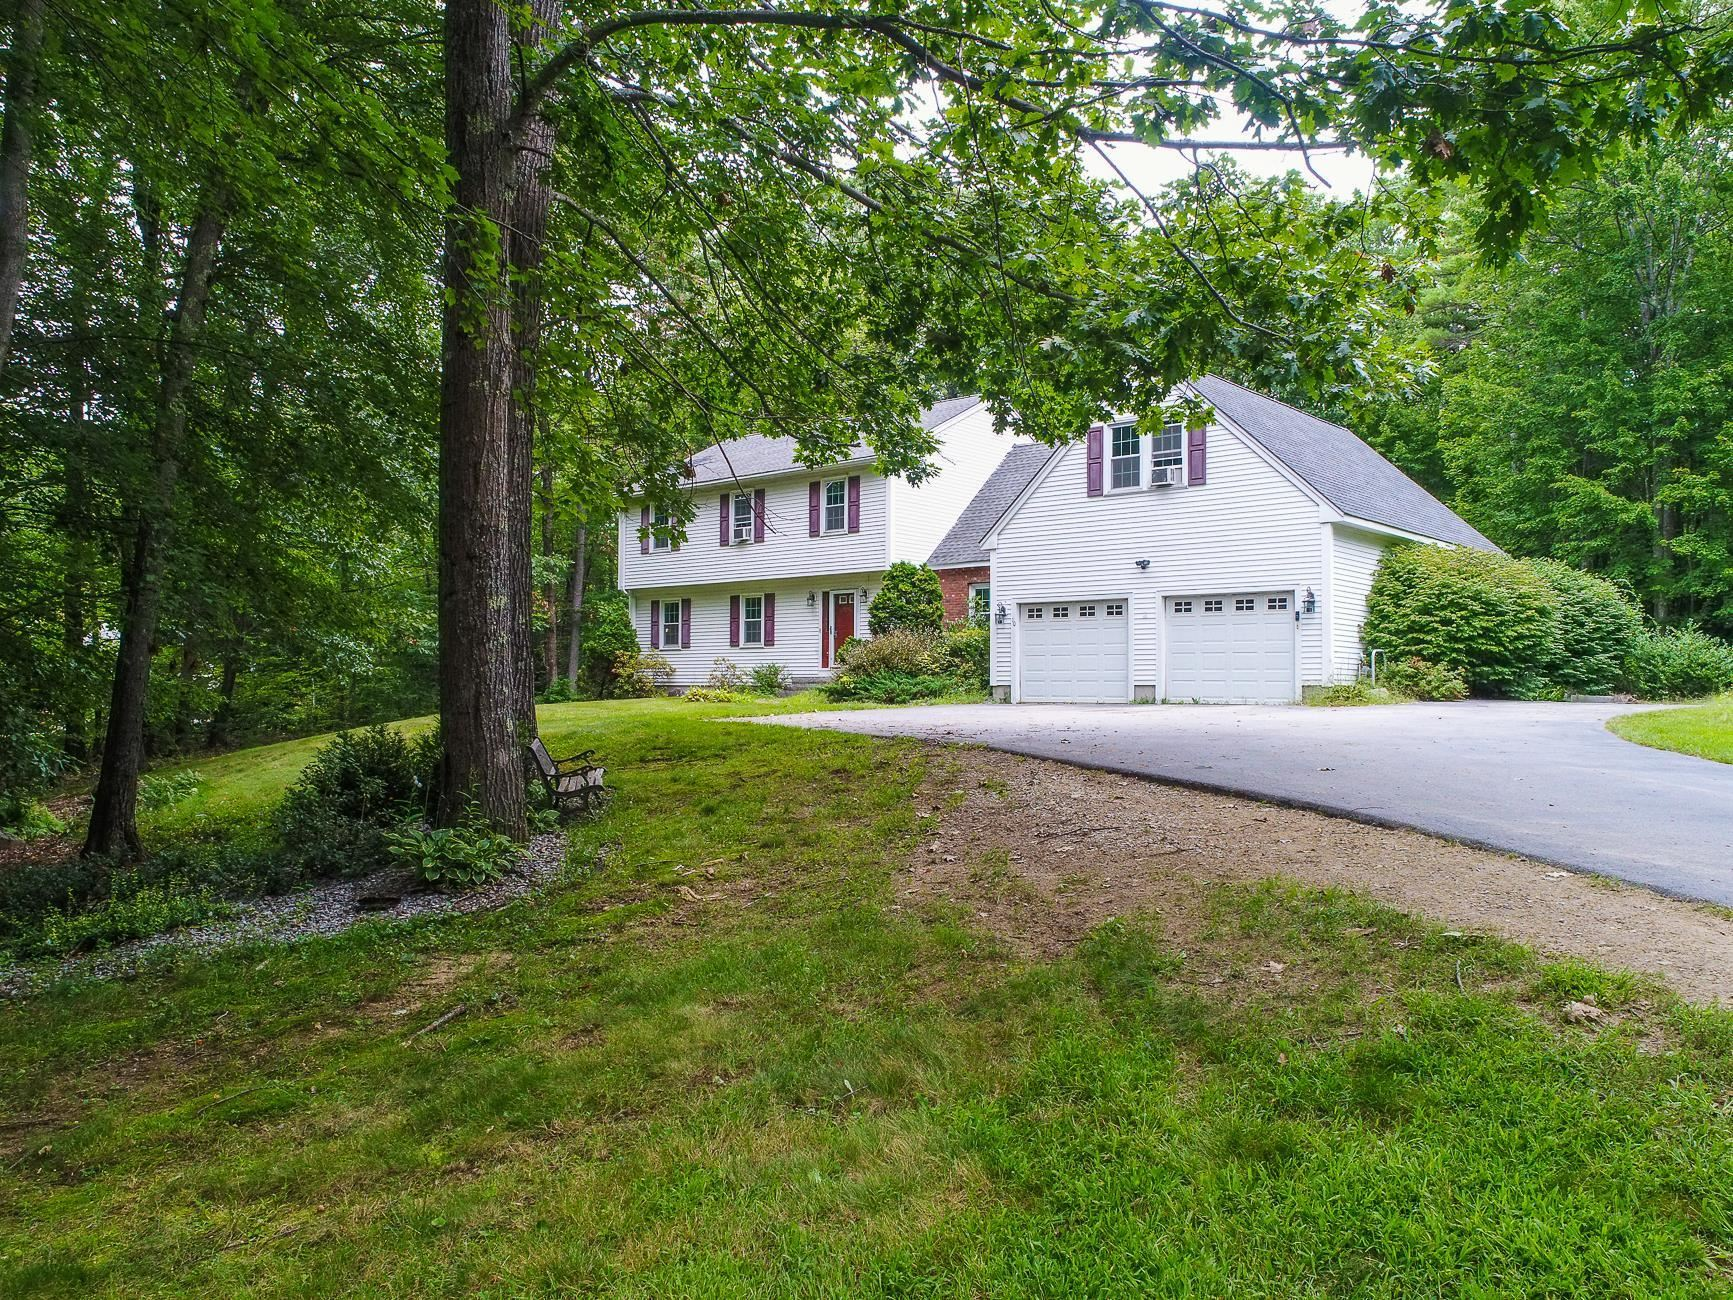 10 Blevens Drive, Concord, NH 03301 - MLS#: 4881201